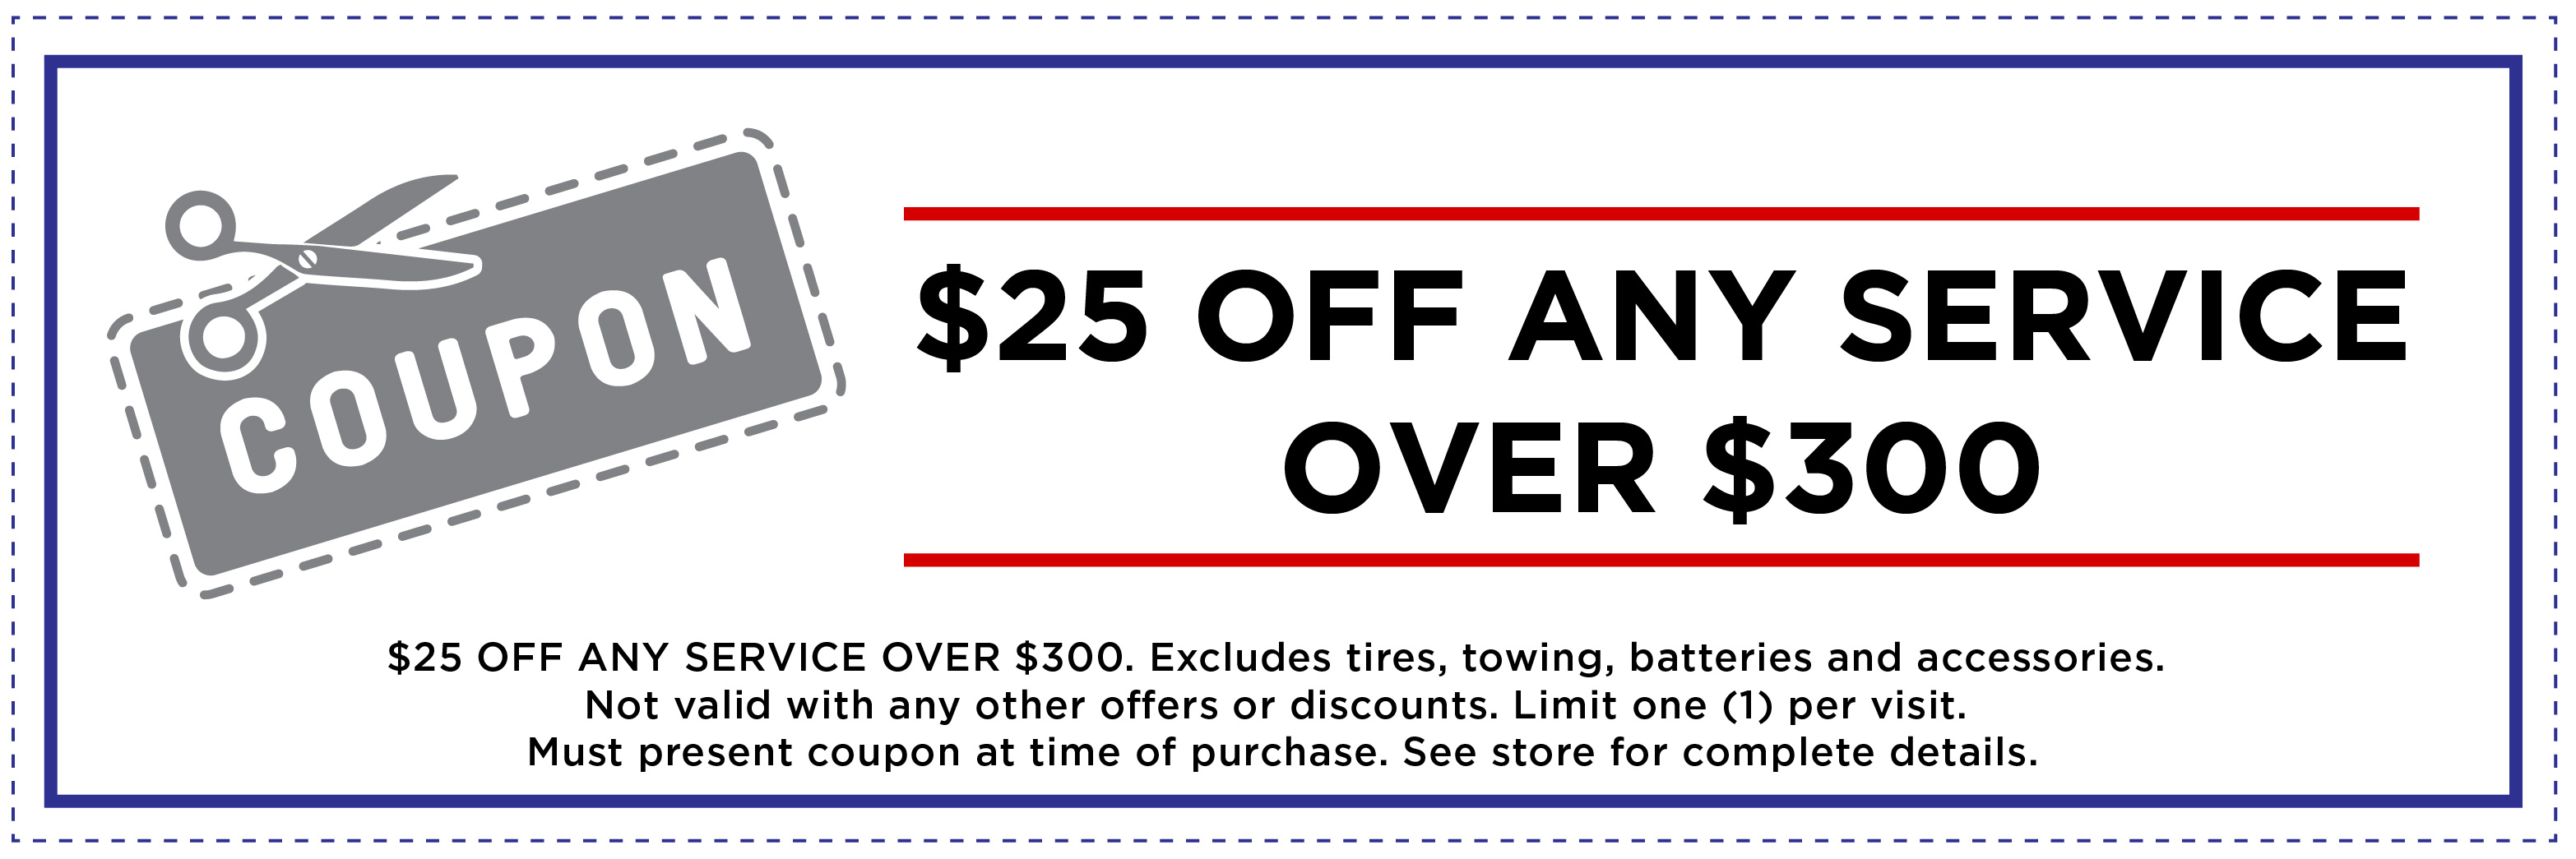 $25 OFF ANY SERVICE OVER $300